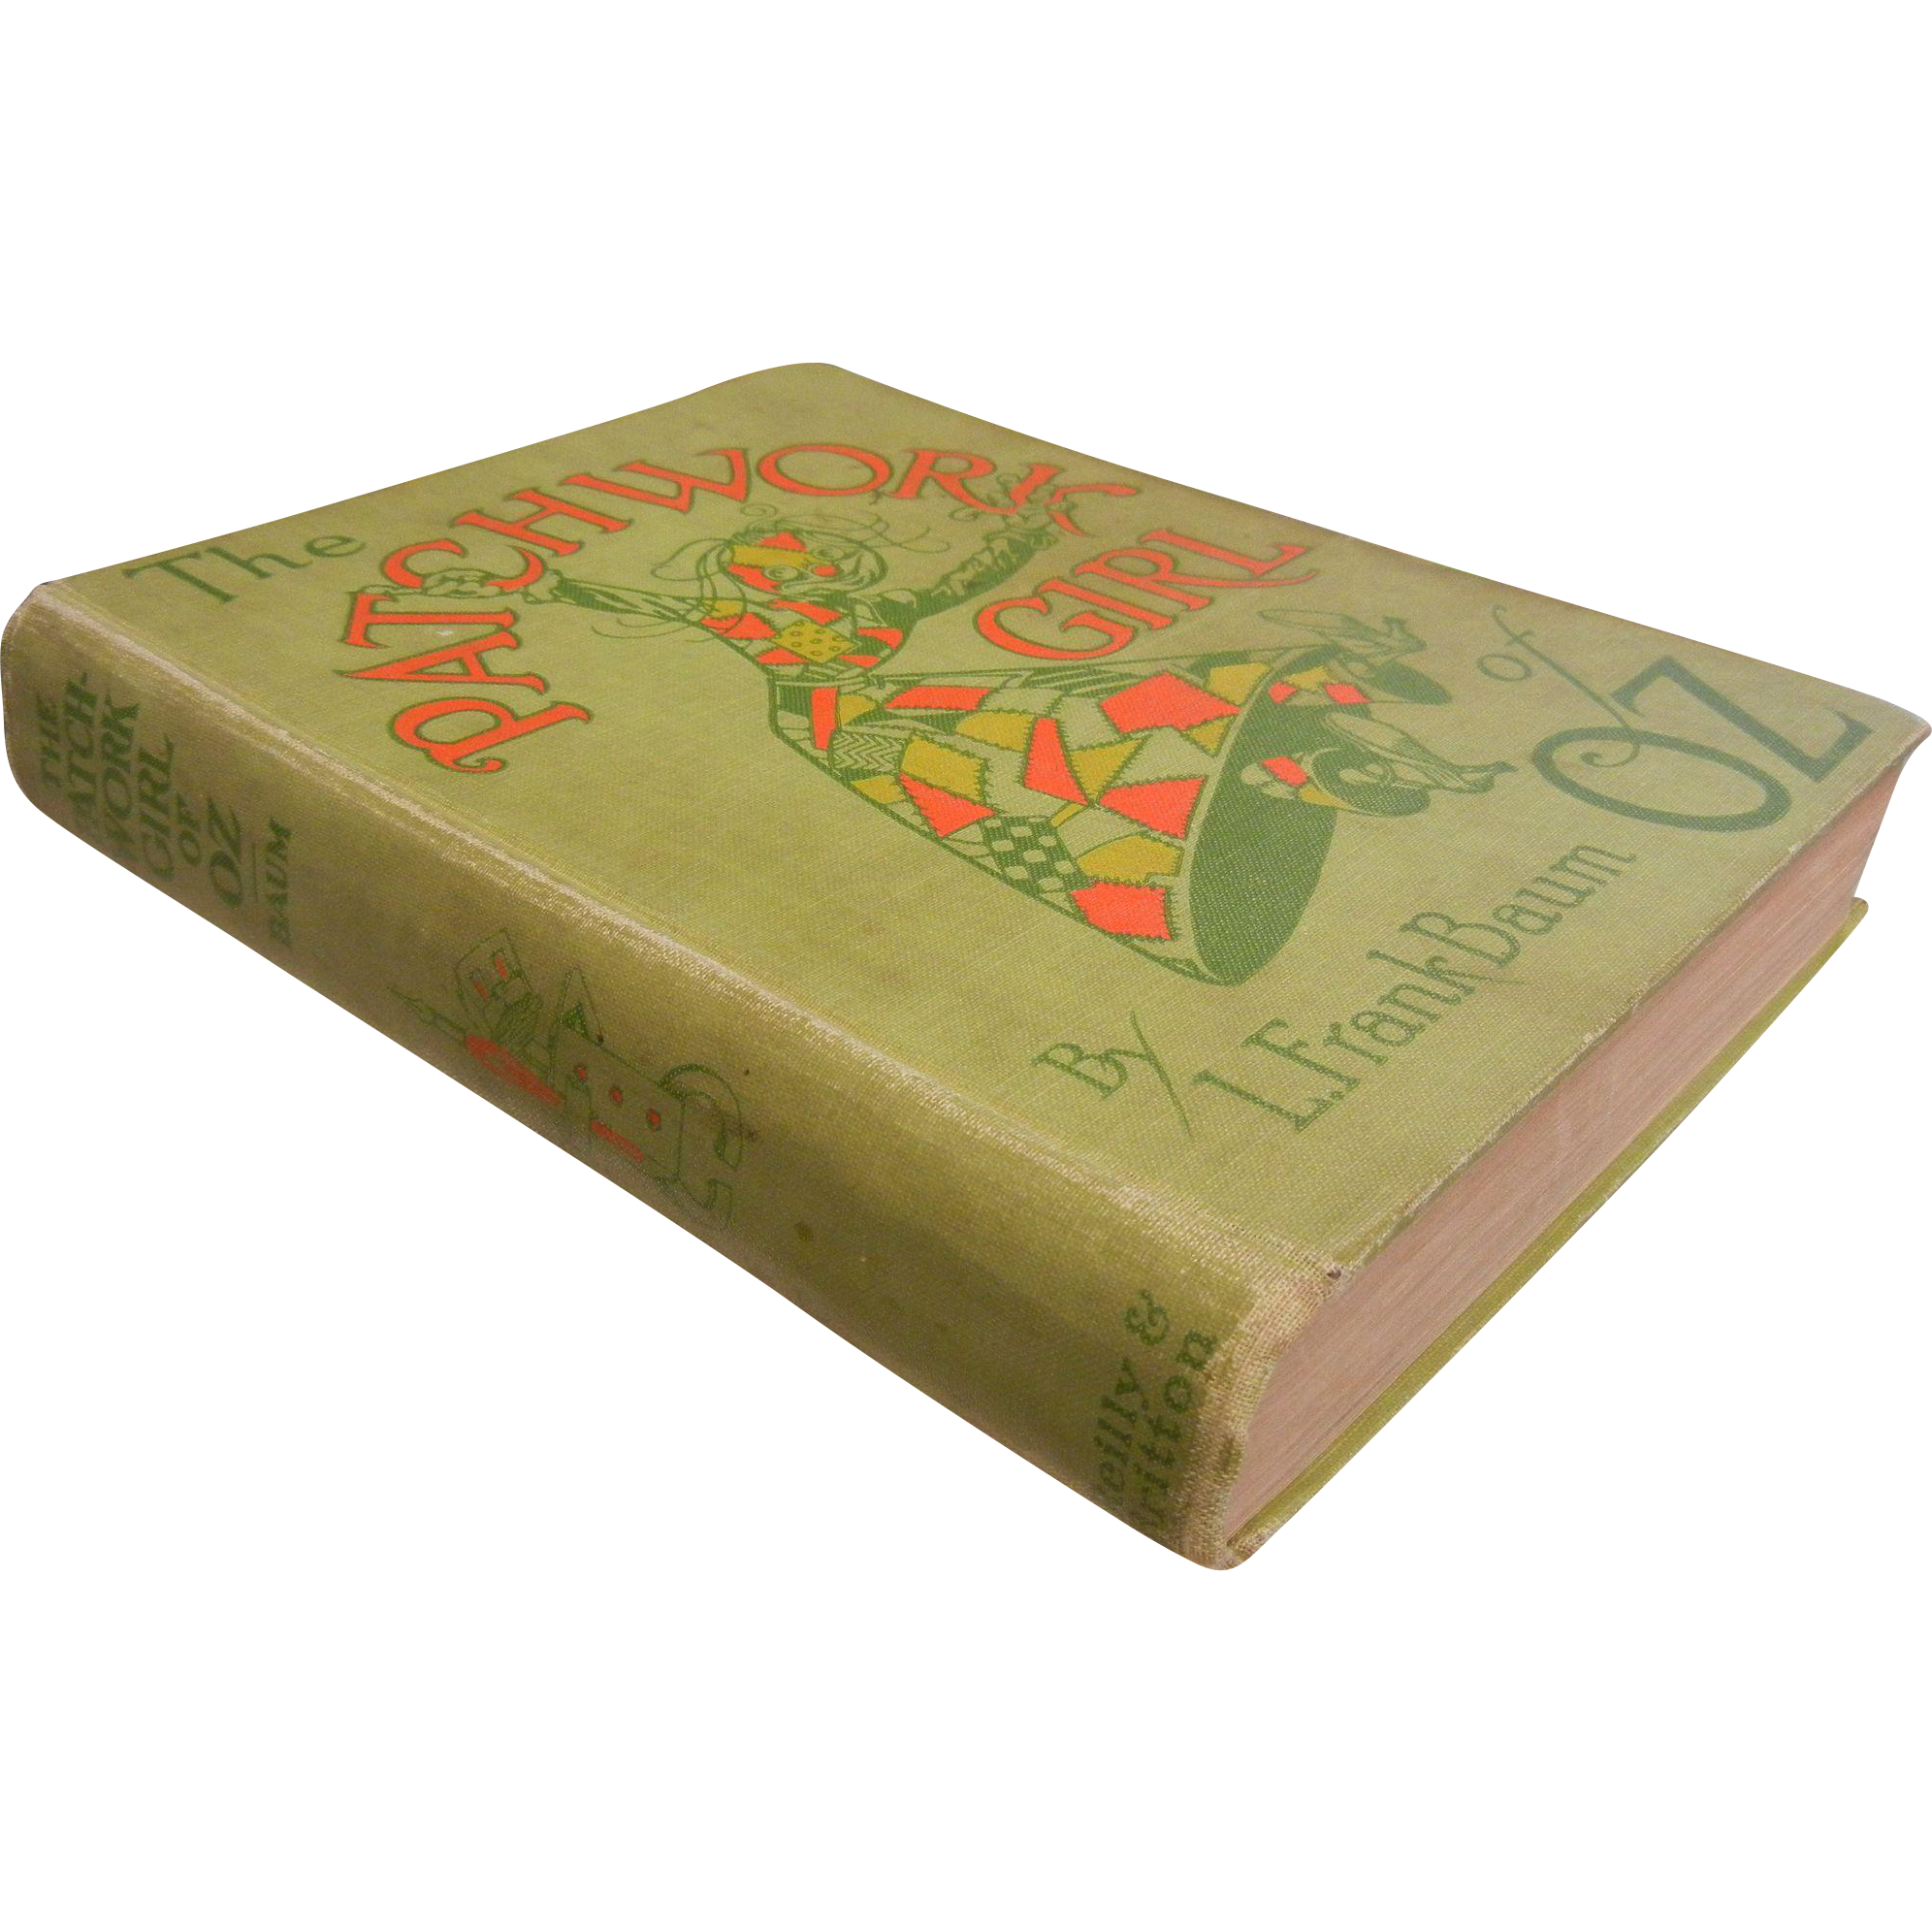 "First Edition 1913 Hardcover Copy of ""The Patchwork Girl of Oz"" by L. Frank Baum"